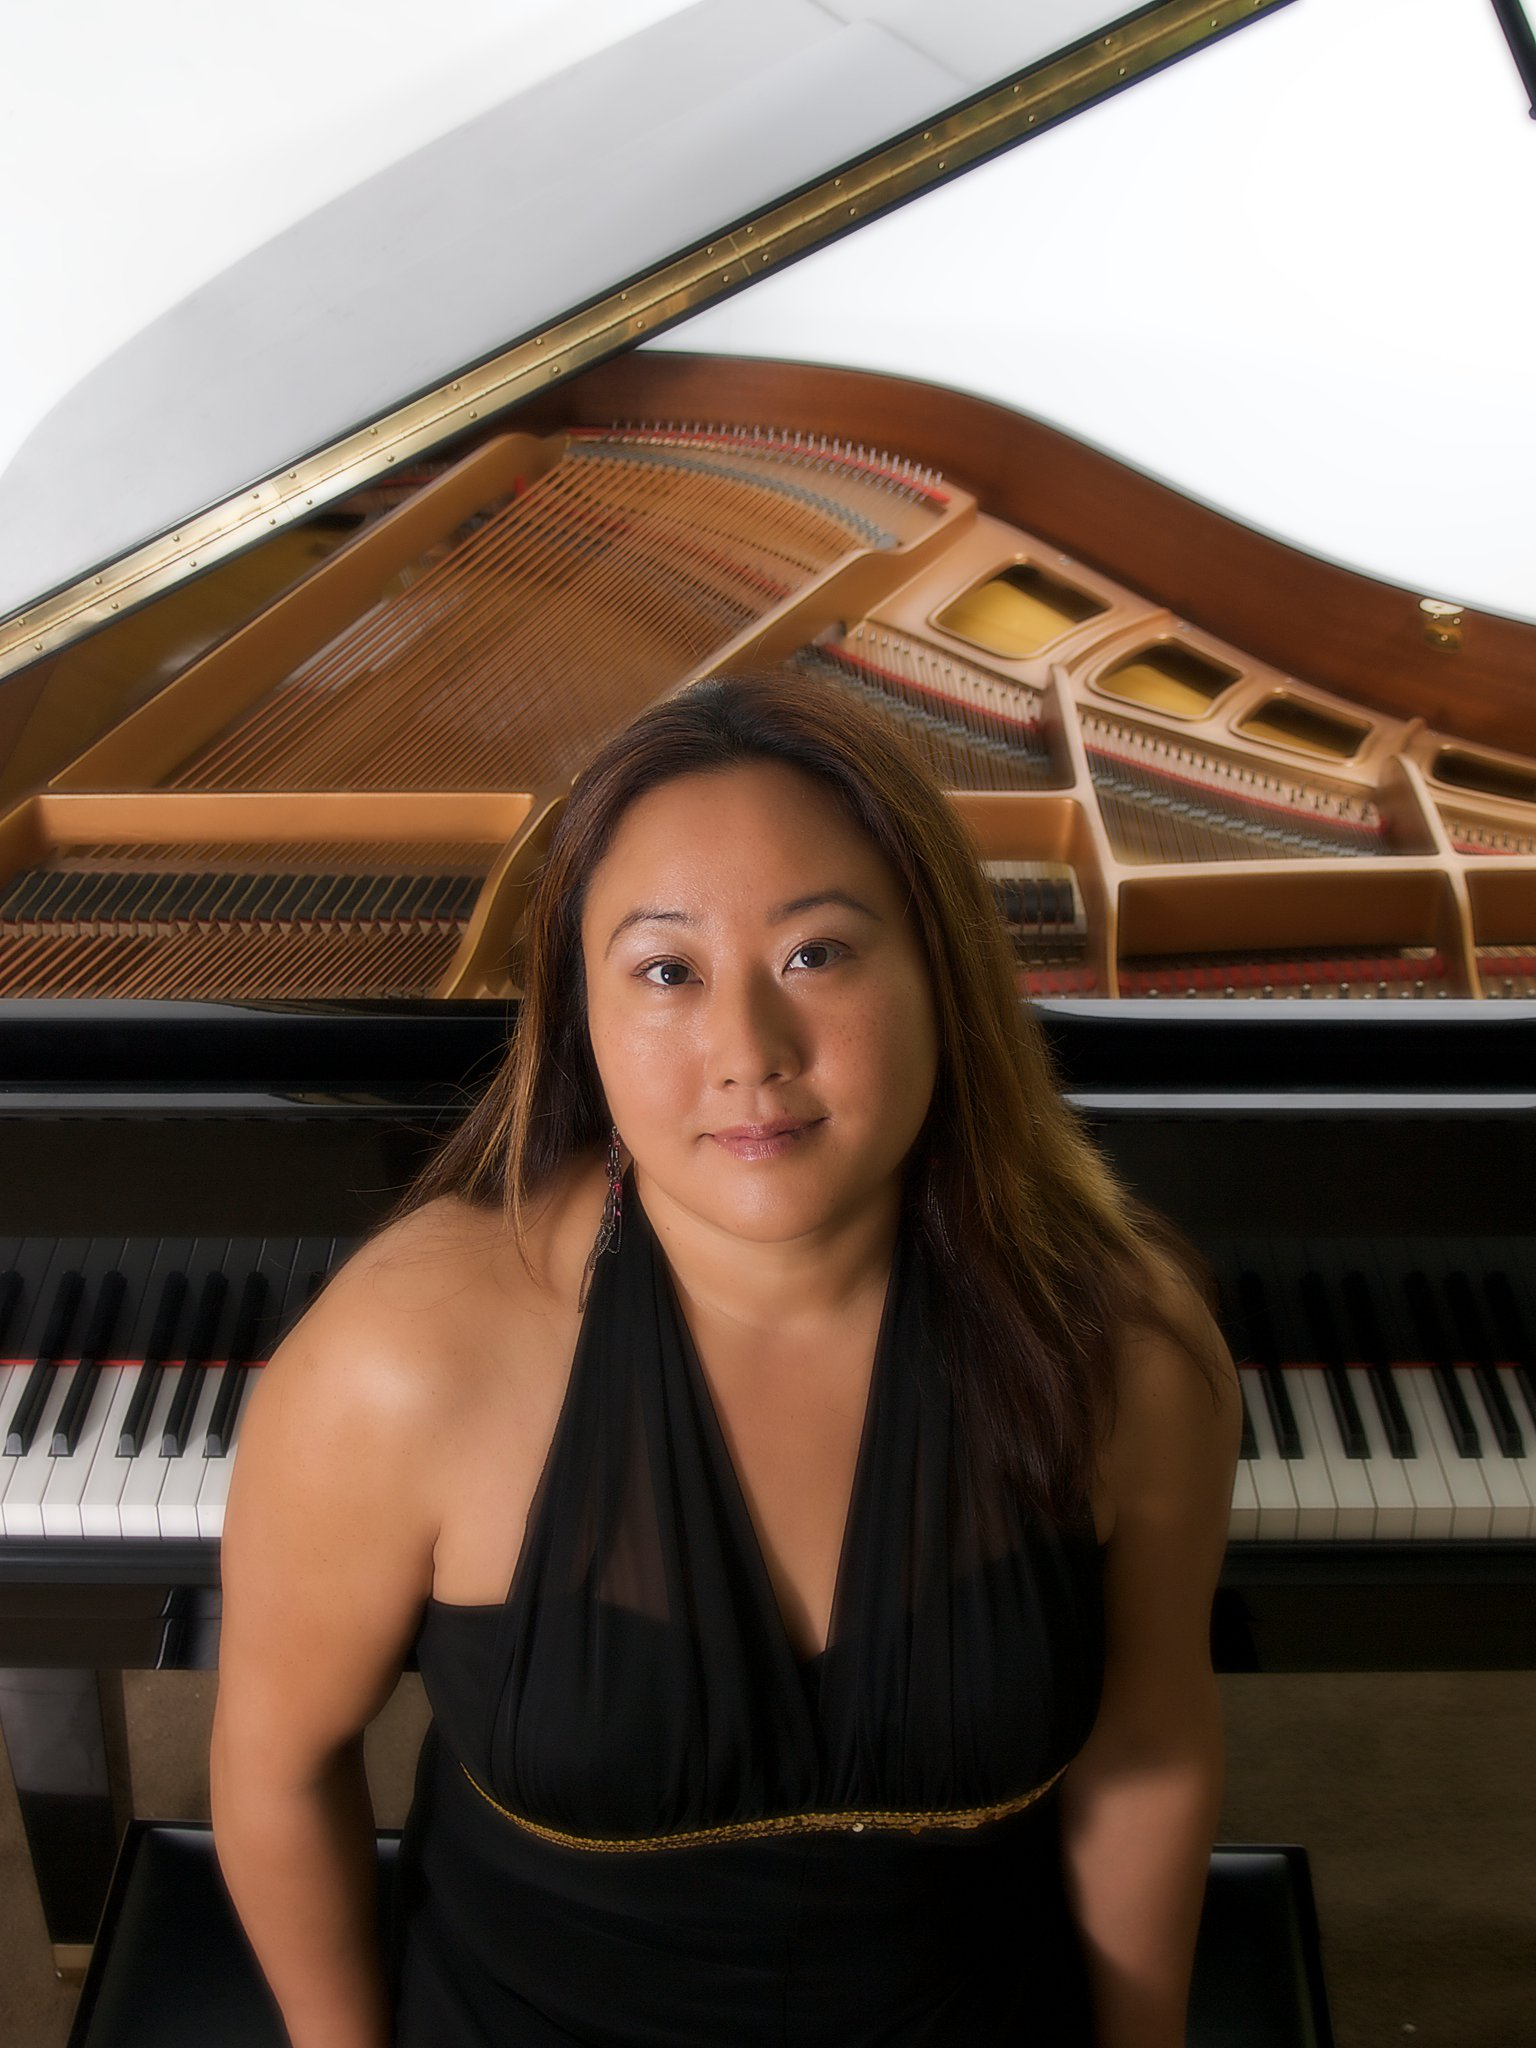 Liko was born in Osaka, Japan, where she begun her piano study at age 3. Liko performed as a soloist with a symphony orchestra several times at her teenage years while studying with Reiko Matsuzaki, an internationally acclaimed pianist. Liko moved to Ottawa in 2000, and has been busy piano accompanying hundreds of strings and wind instrument students for their exams, recitals and competitions in Ottawa and many other cities in Ontario and Quebec.